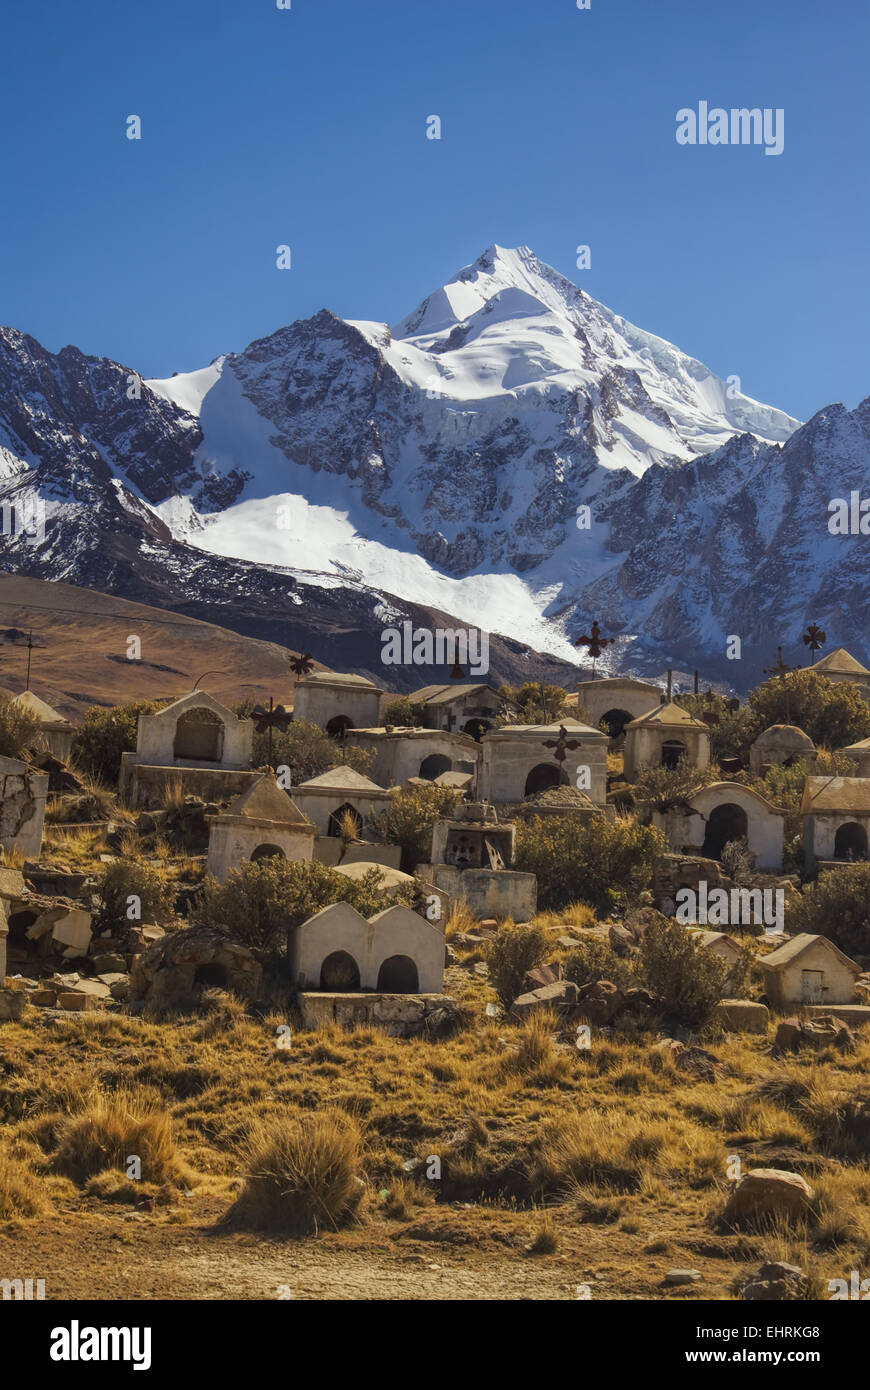 Necropolis with Huayna Potosi mountain in the background, peak in Bolivian Andes - Stock Image